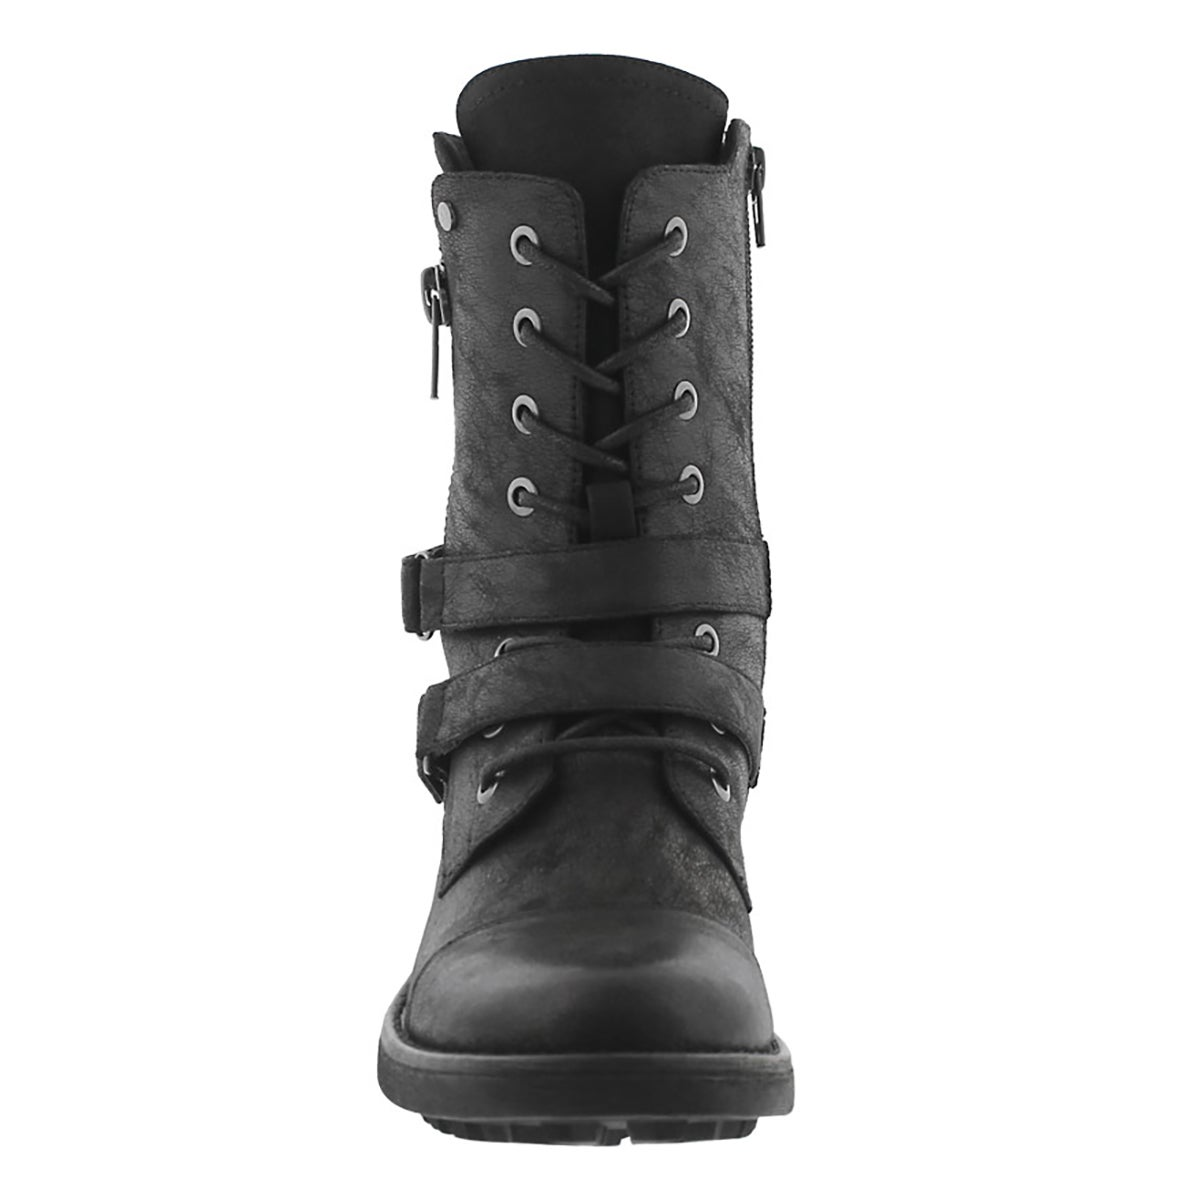 Lds Bex black lace up combat boot